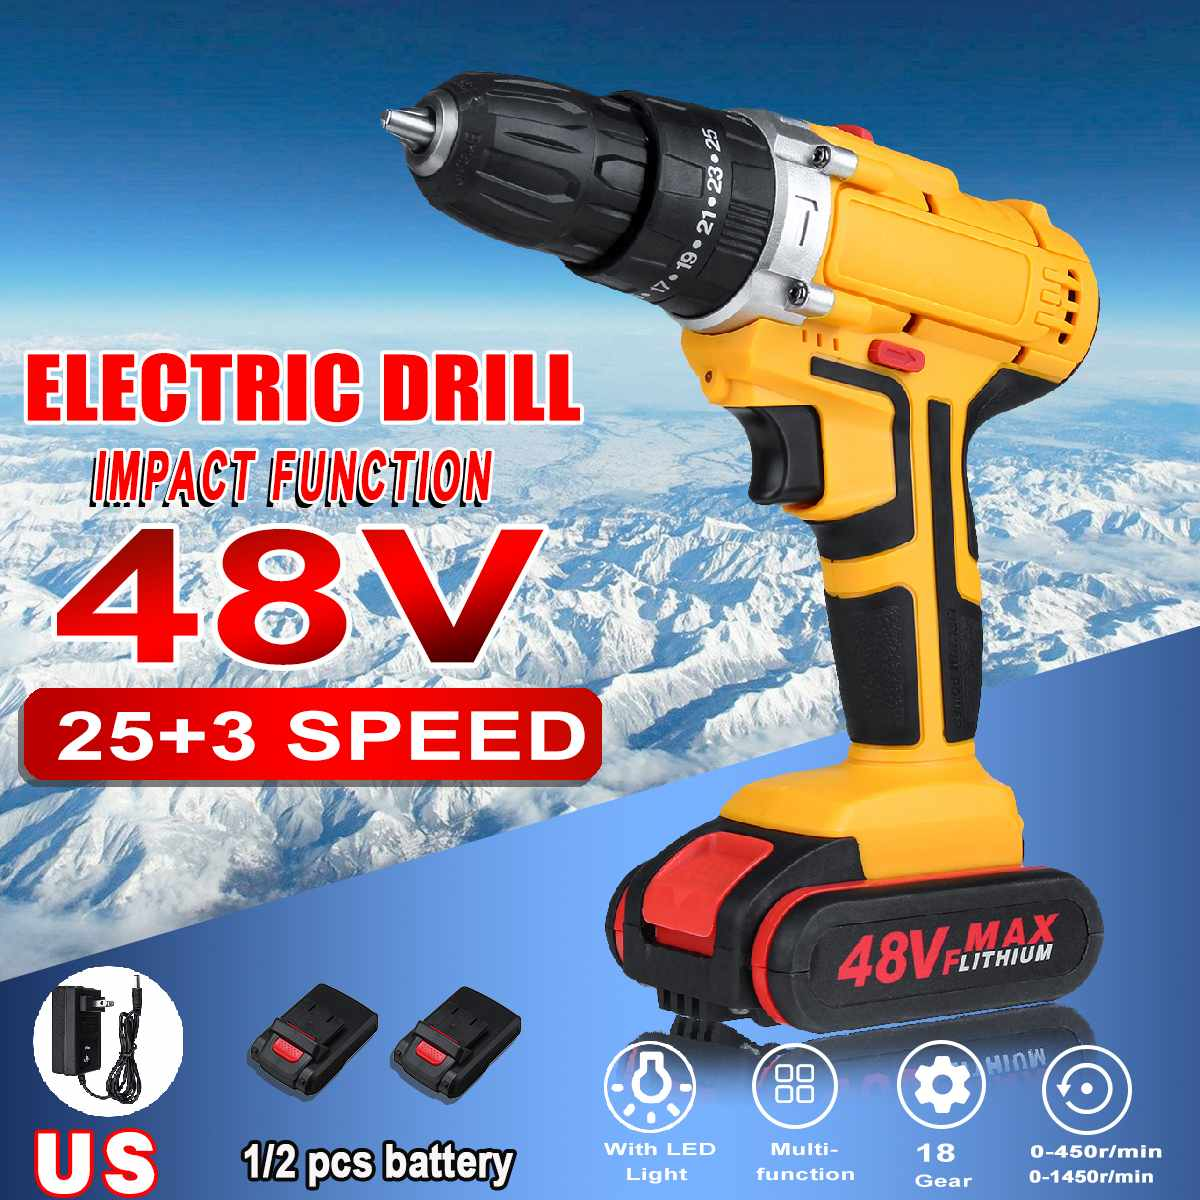 48V 25+3 Torque 2-Speed Electric Screwdriver Cordless Drill Impact Drill Mini Wireless Power Driver 1/2 DC Lithium-Ion Battery